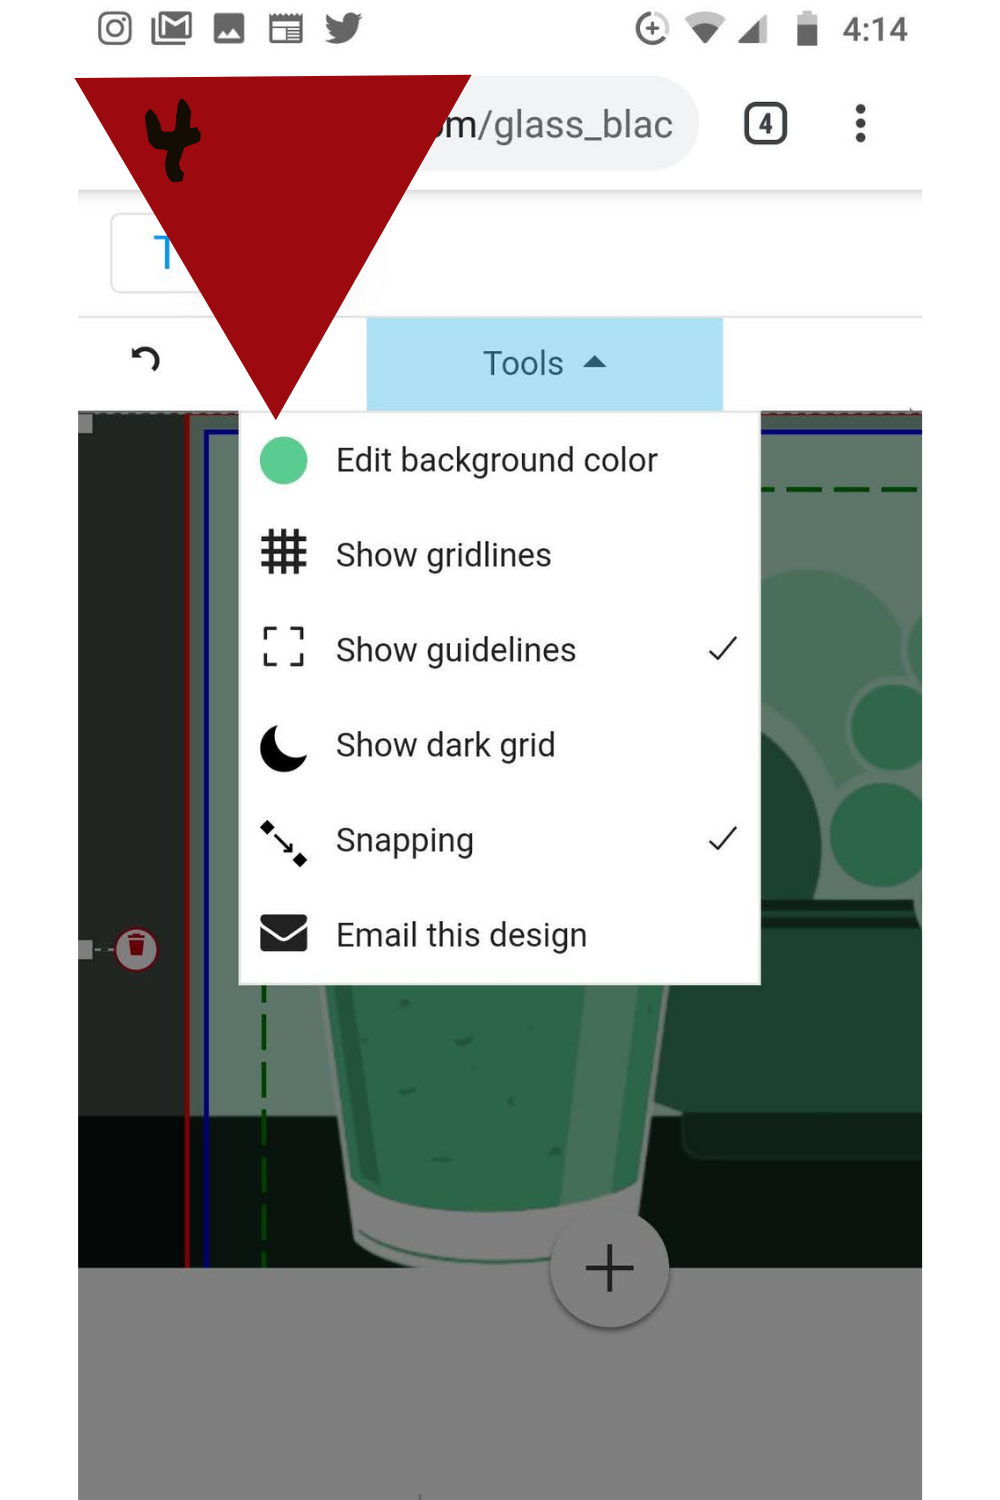 Step 4: Clicking the colored dot at the top of the menu brings you to the menu to manipulate the background color.